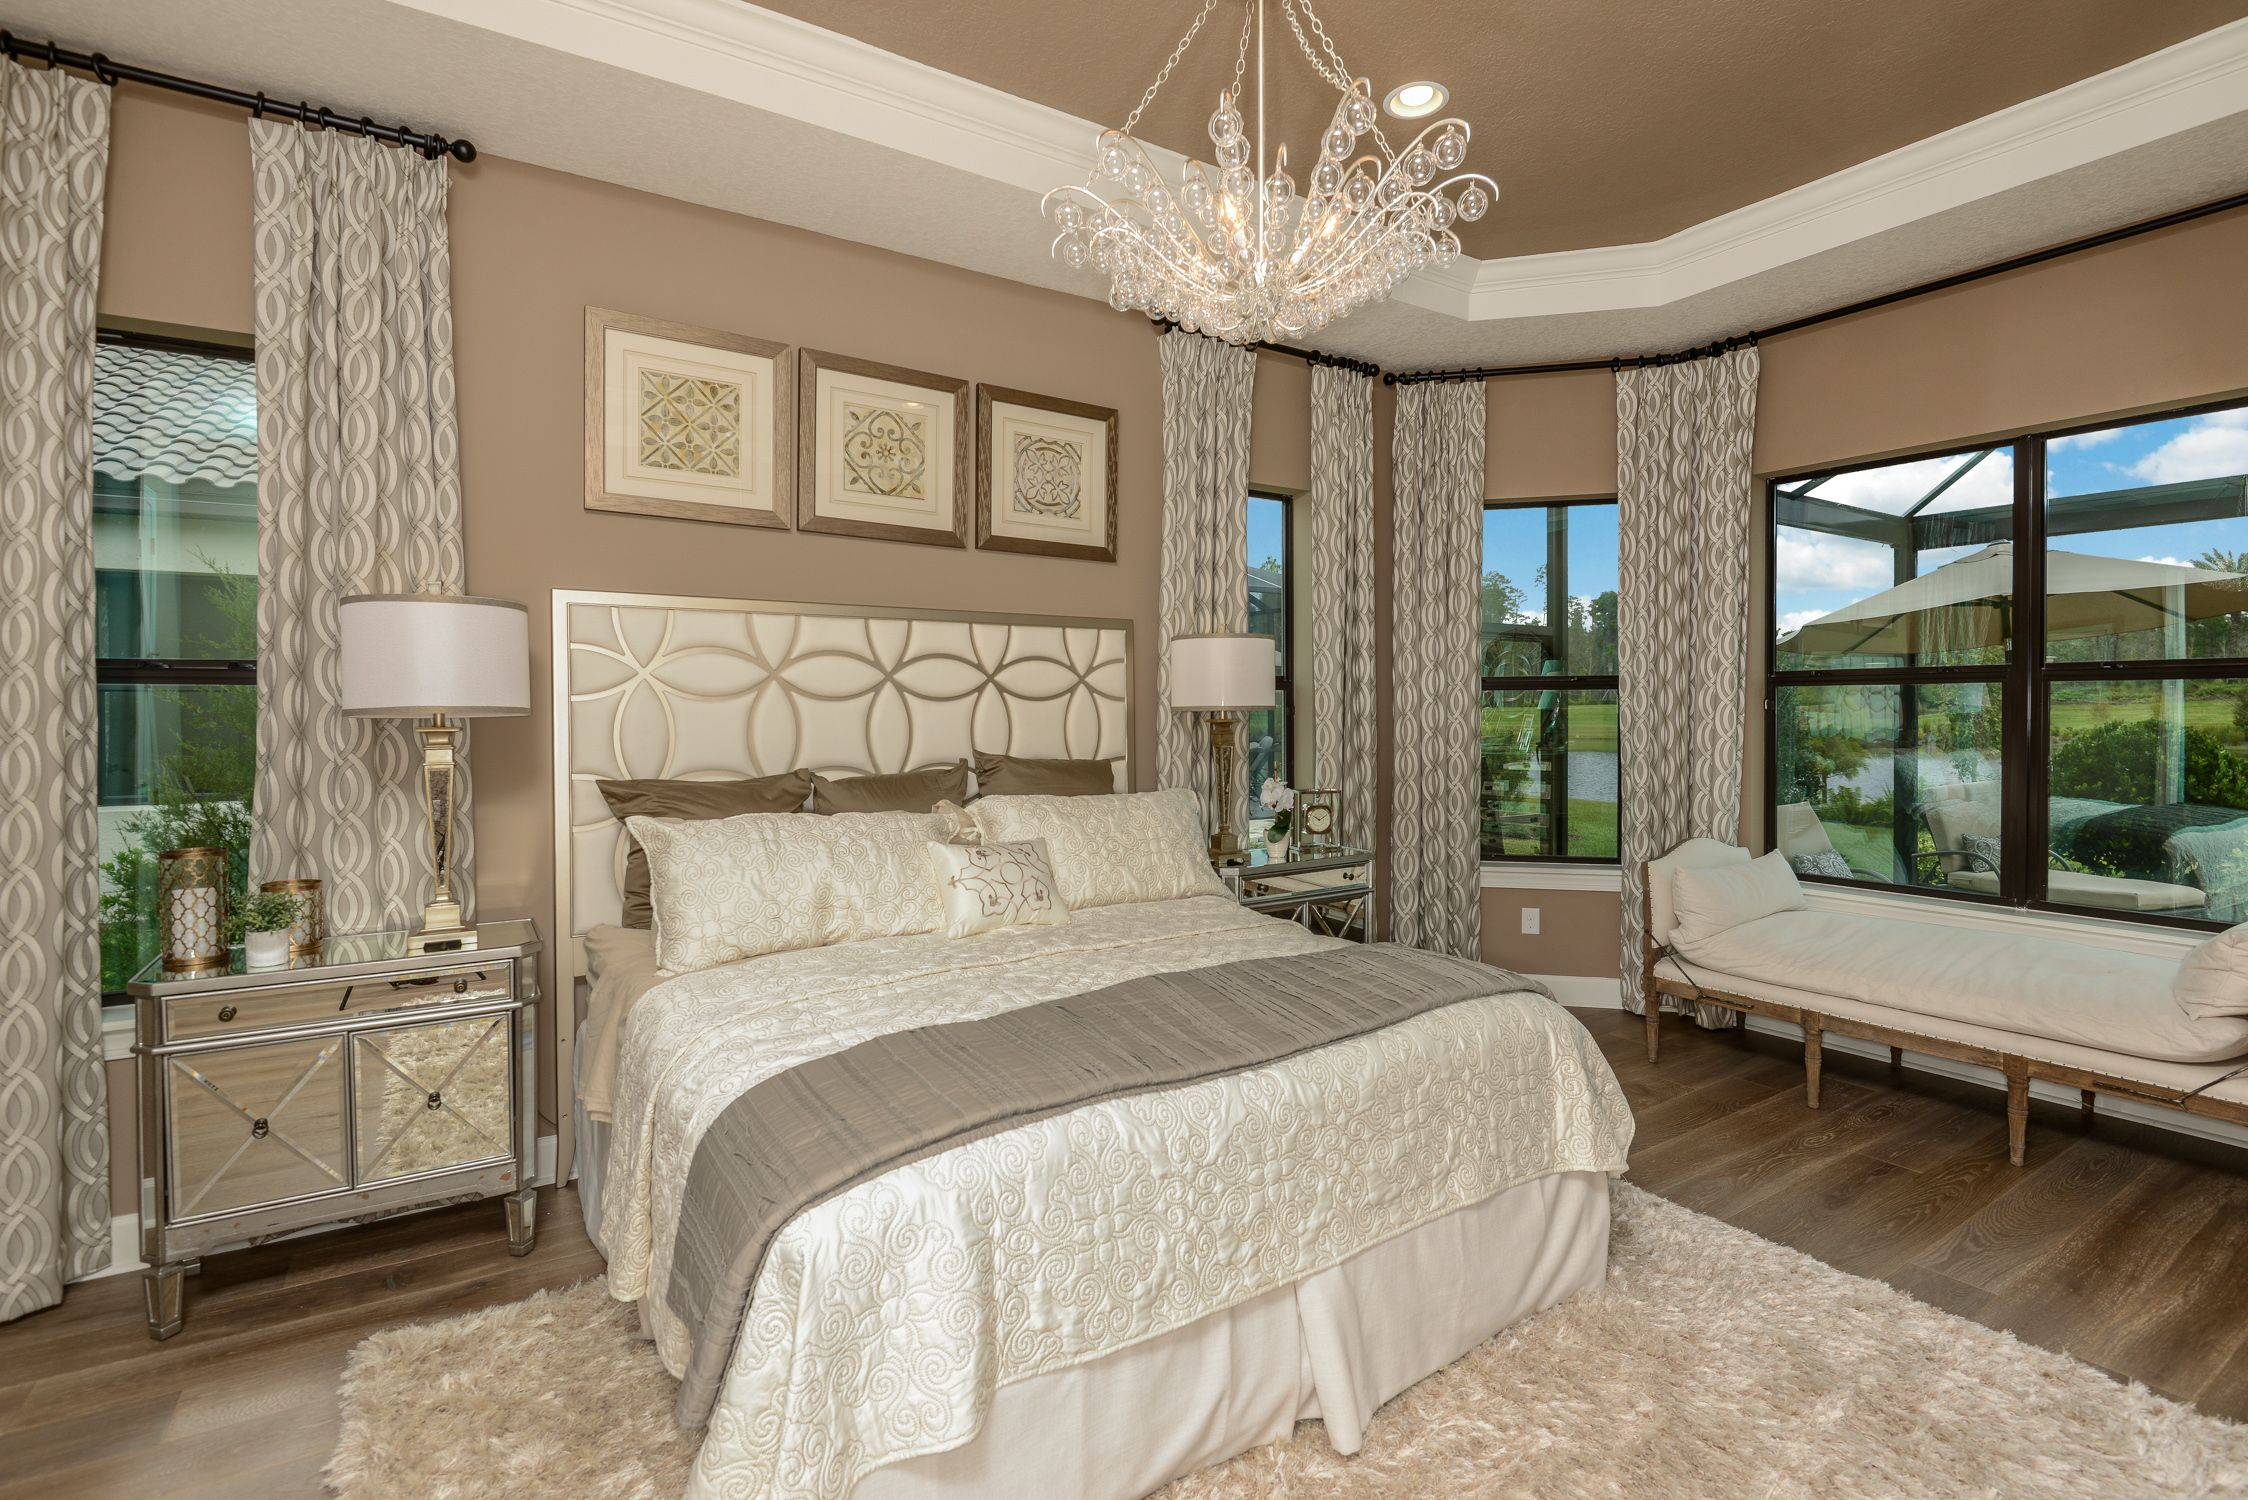 Hitting Snooze Never Looked So Good N Tampa Florida Newhomes